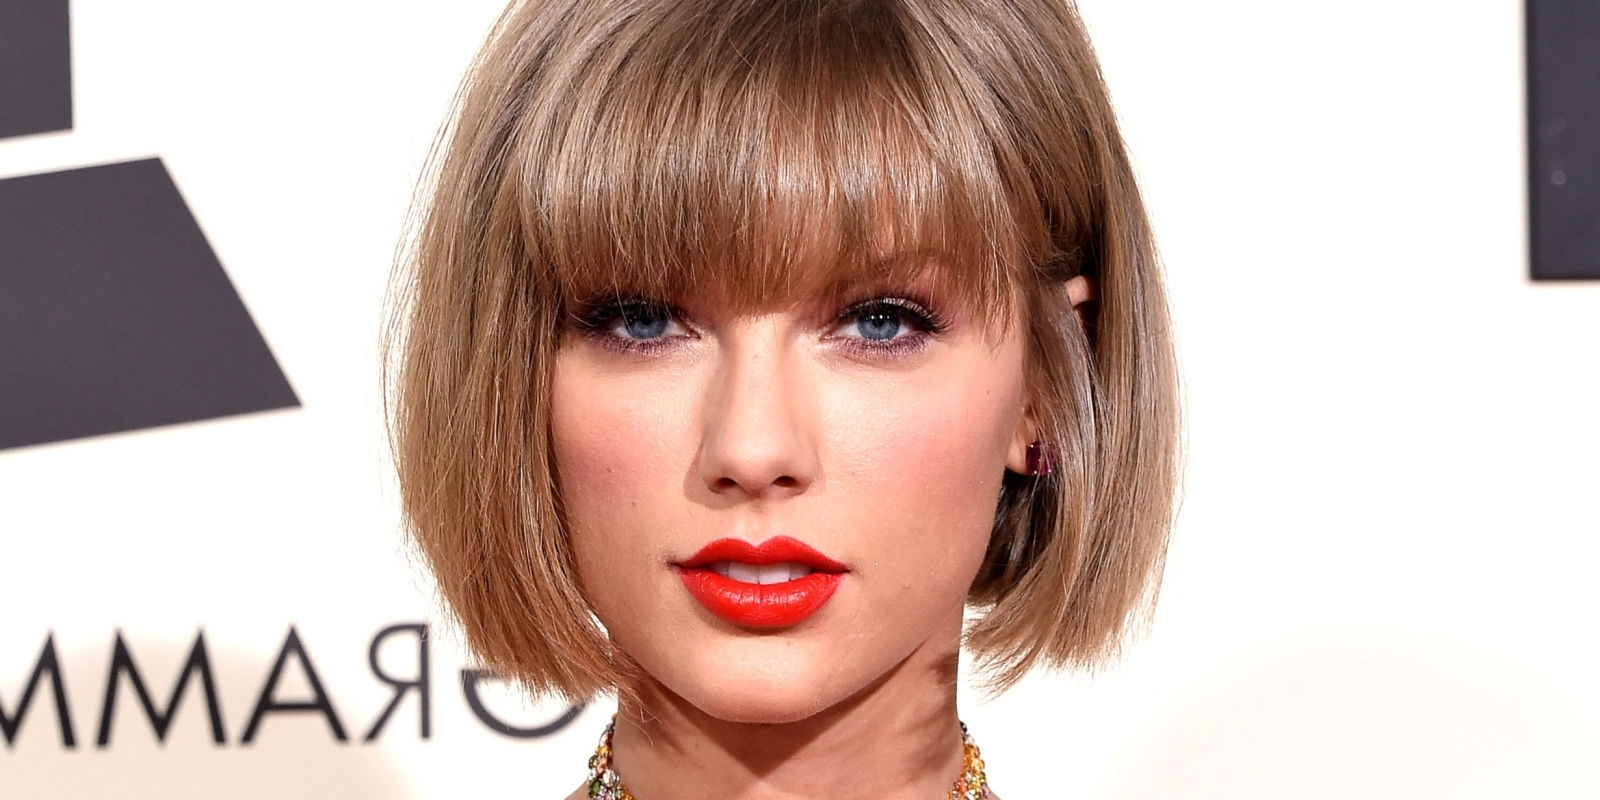 Popular Cropped Tousled Waves And Side Bangs Hairstyles Inside 30 Bangs Hairstyles For Short Hair (View 6 of 20)